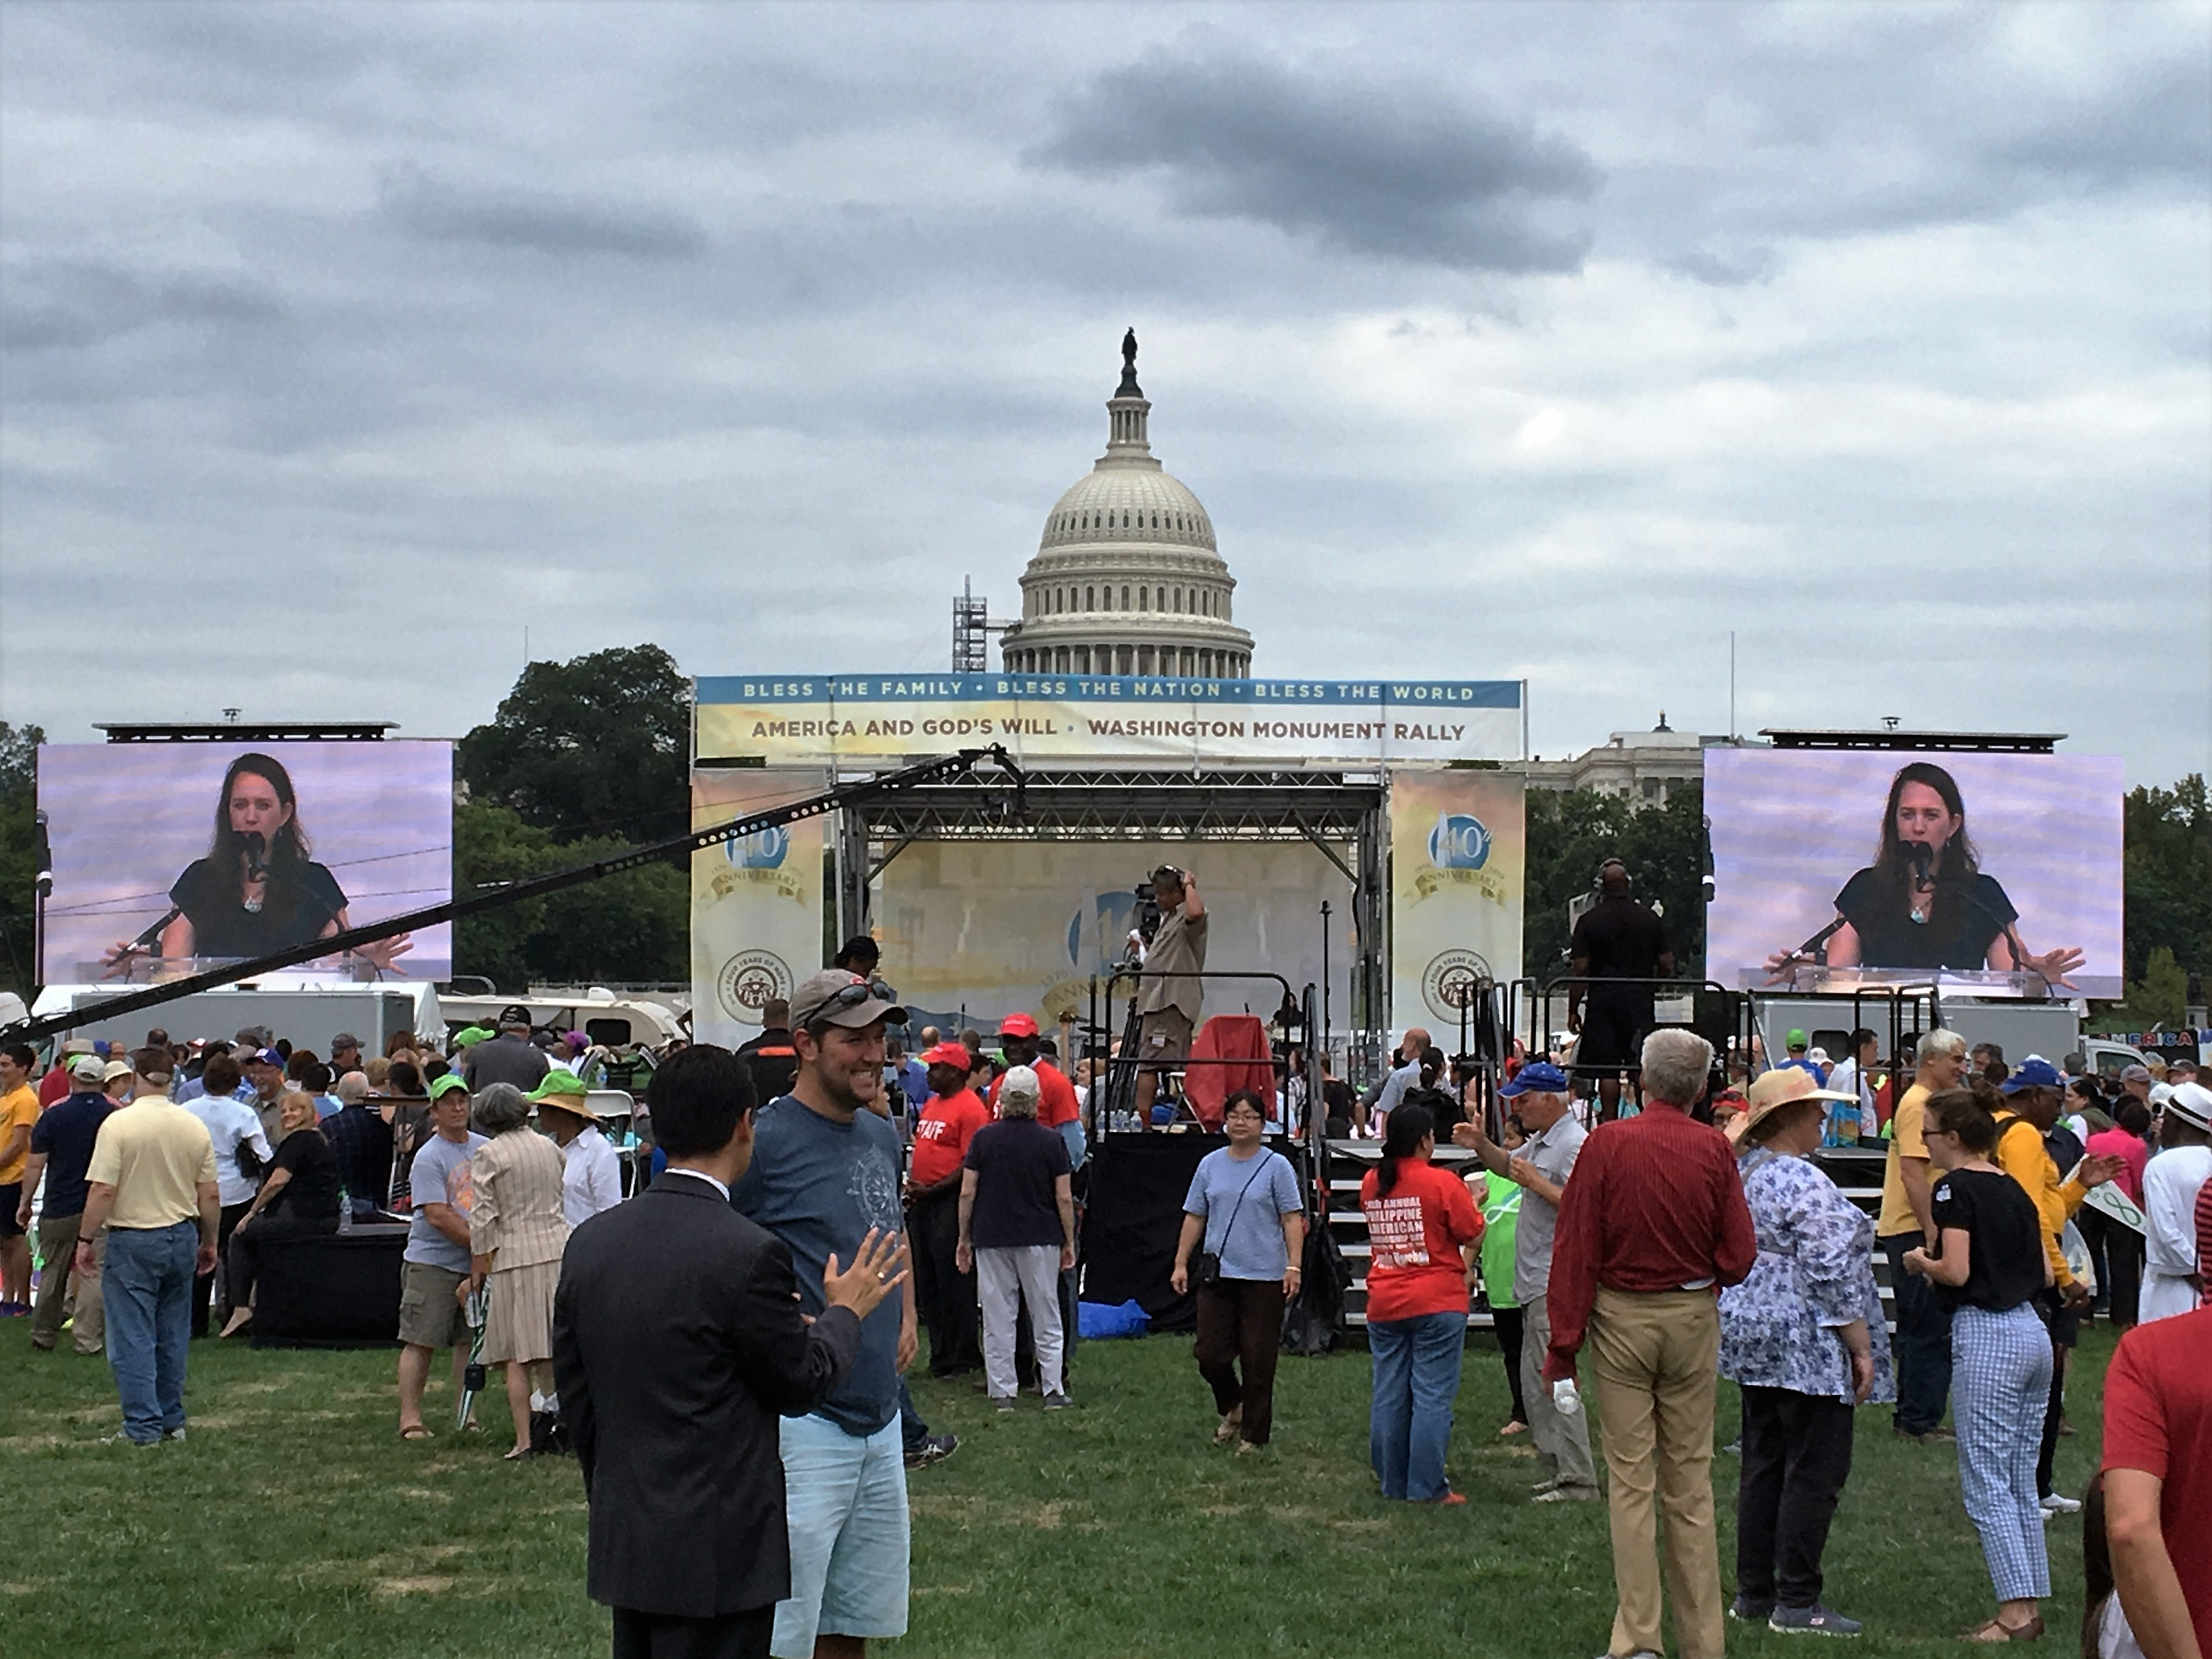 2 Mobile Screens - National Mall